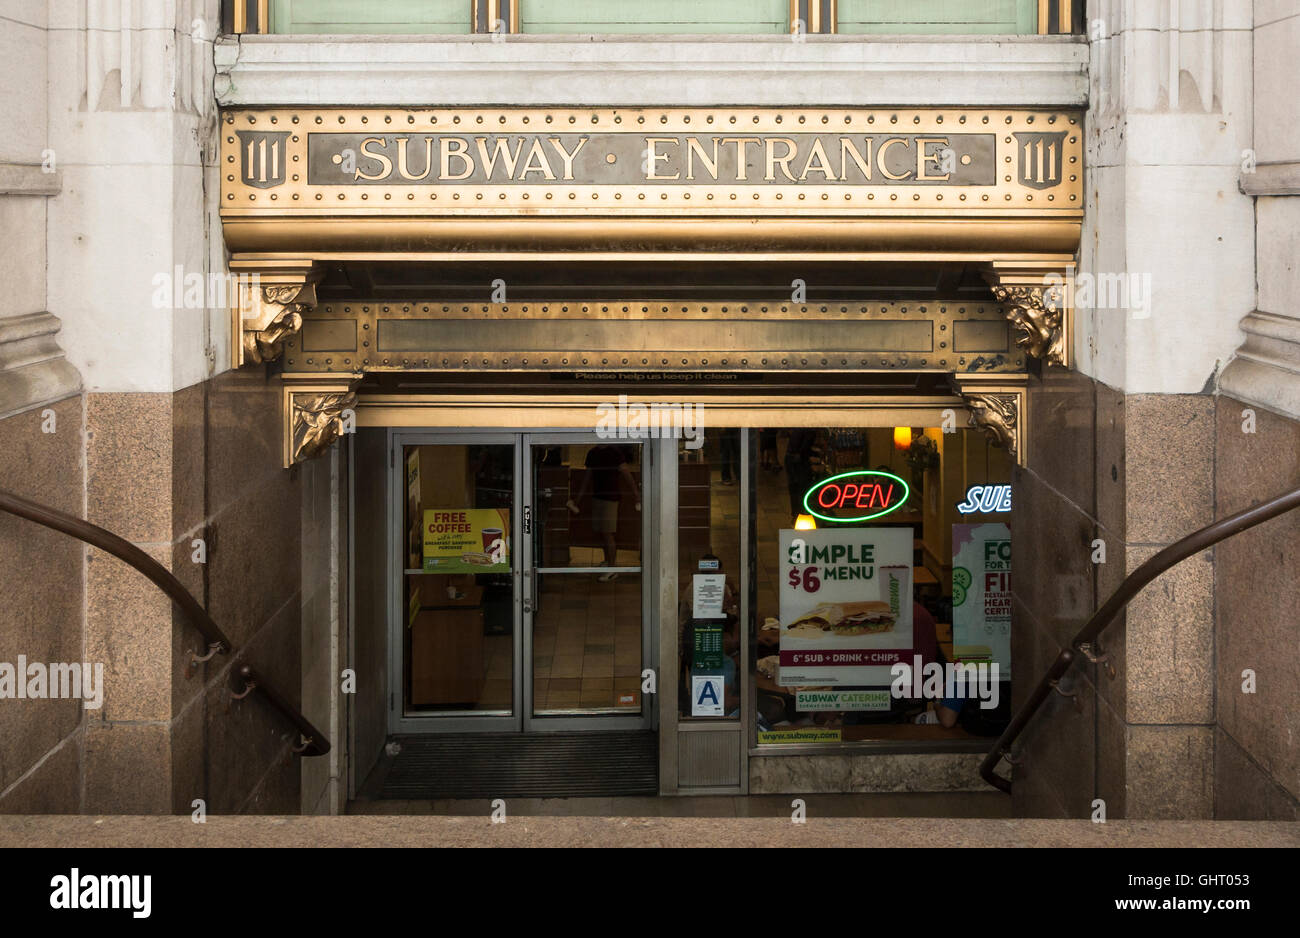 Wall Street subway entrance with ornate gold art deco sign and Subway restaurant below. New York. - Stock Image